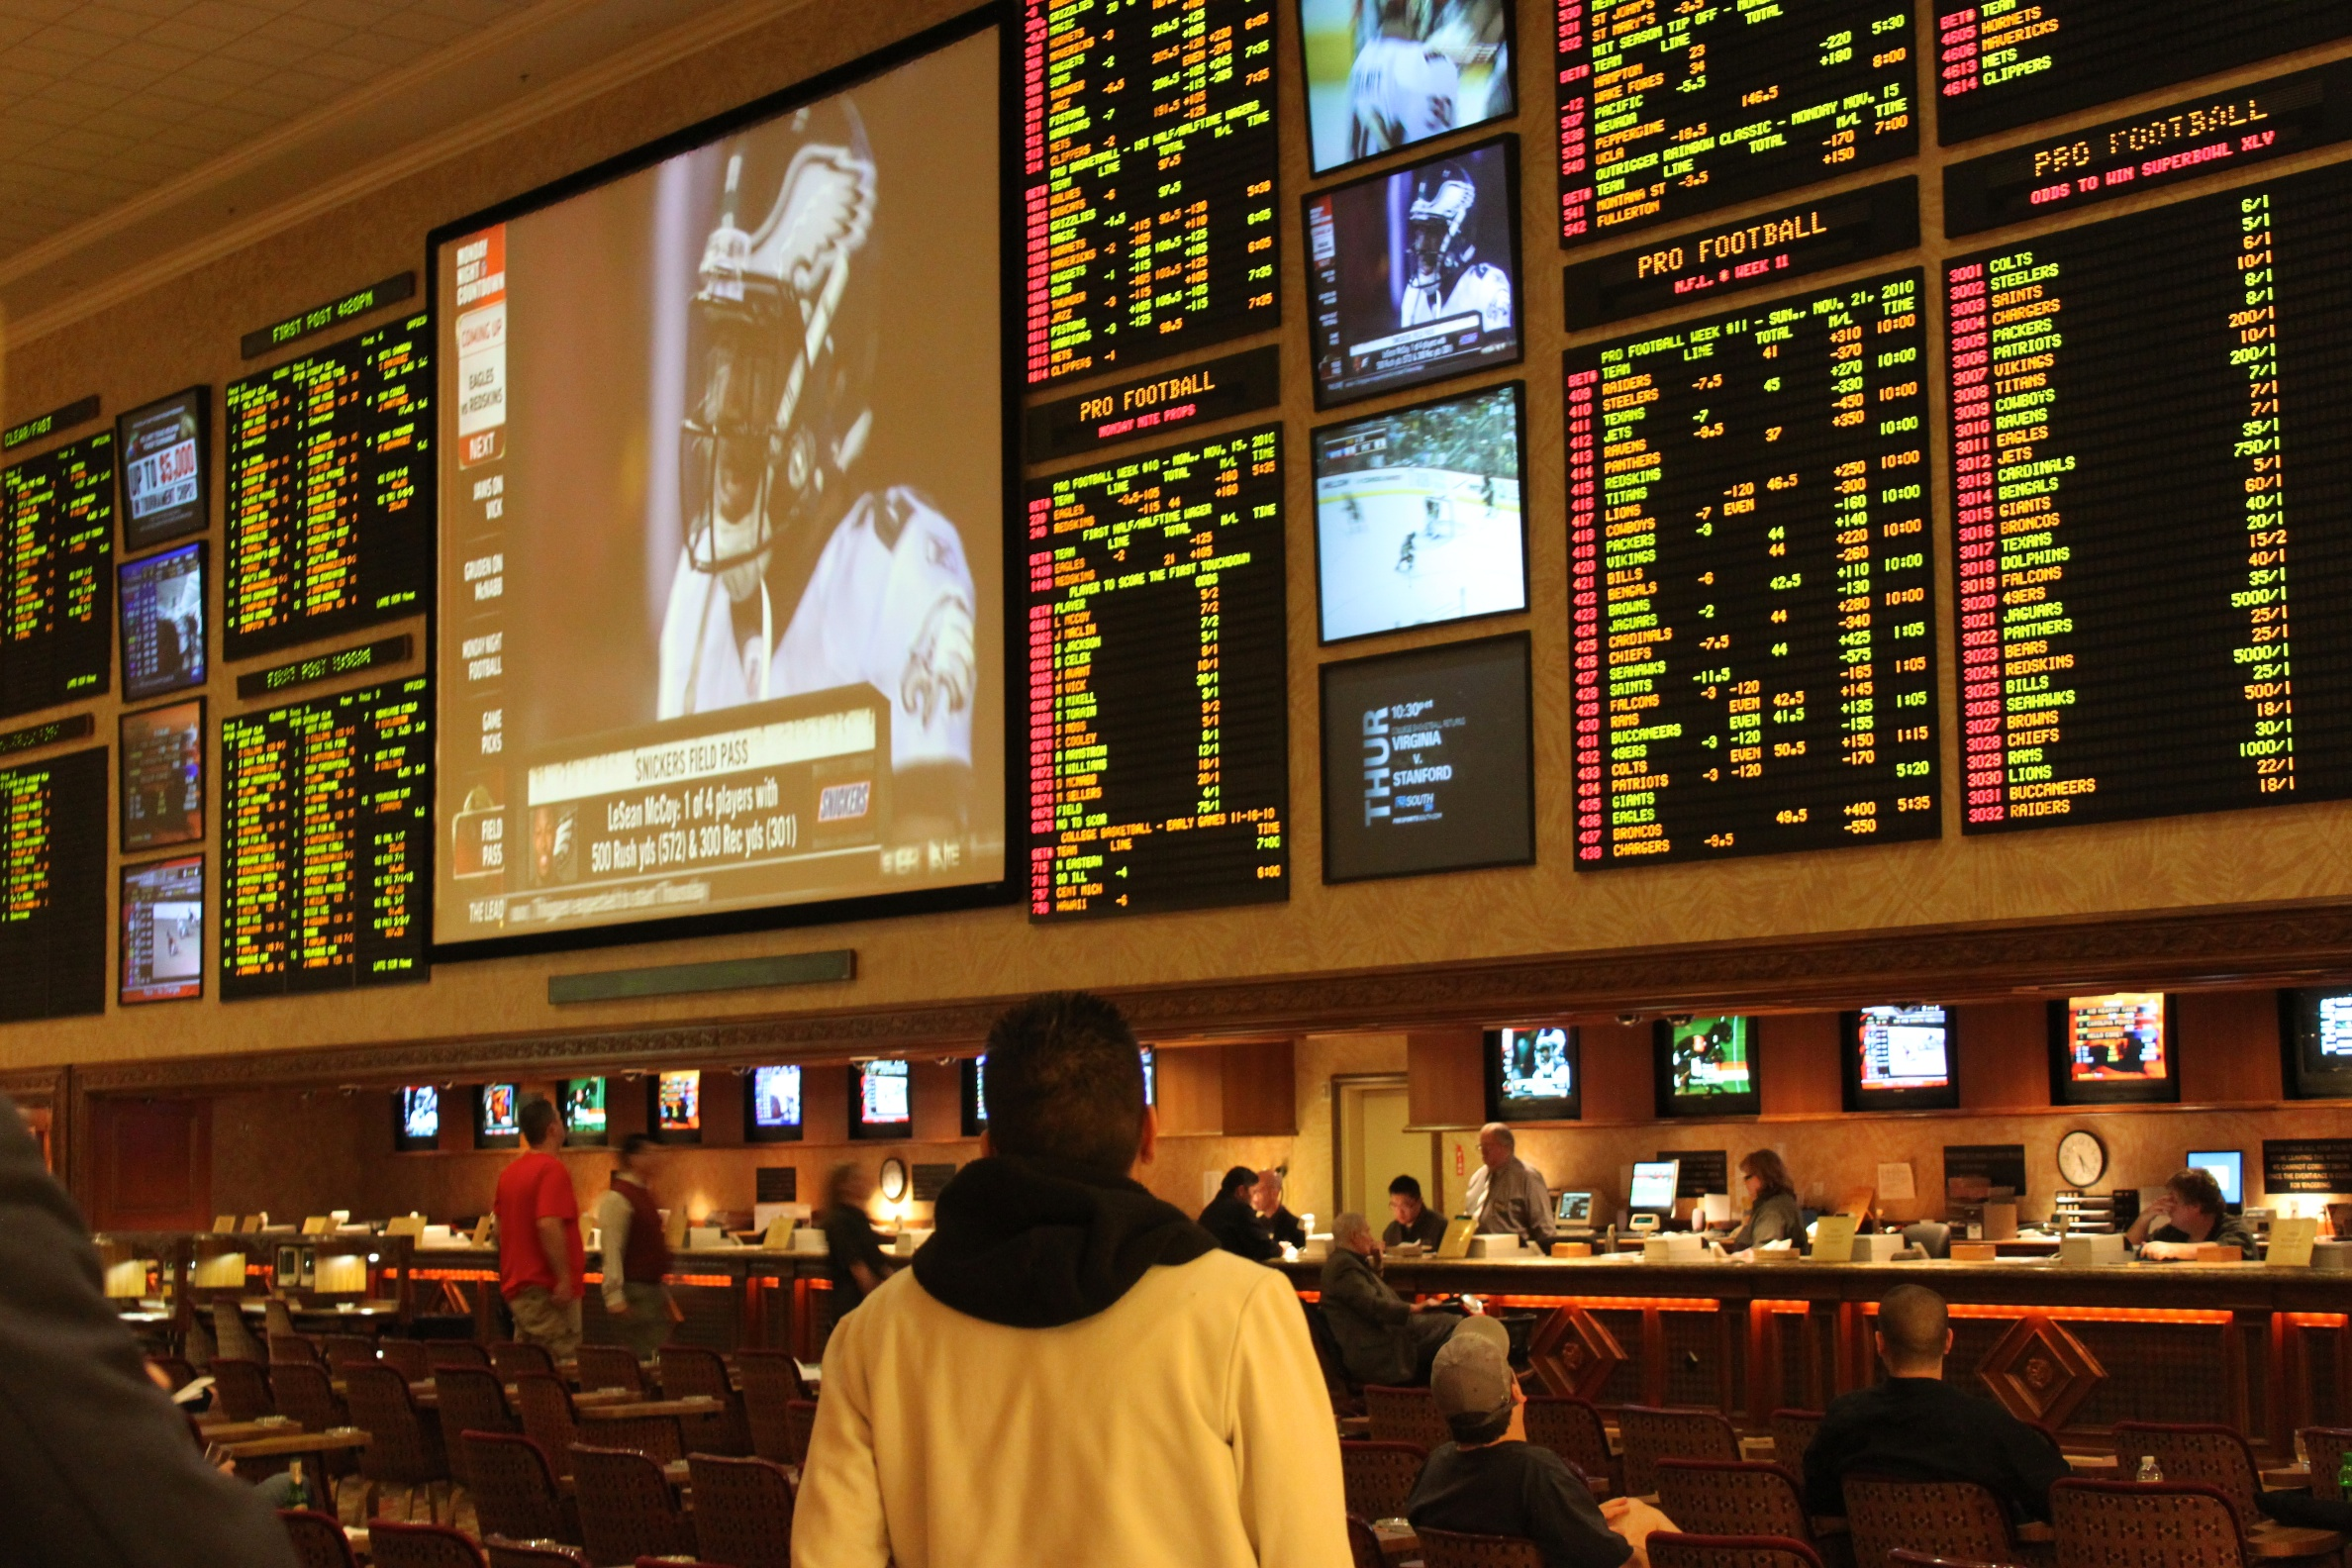 las vegas betting odds